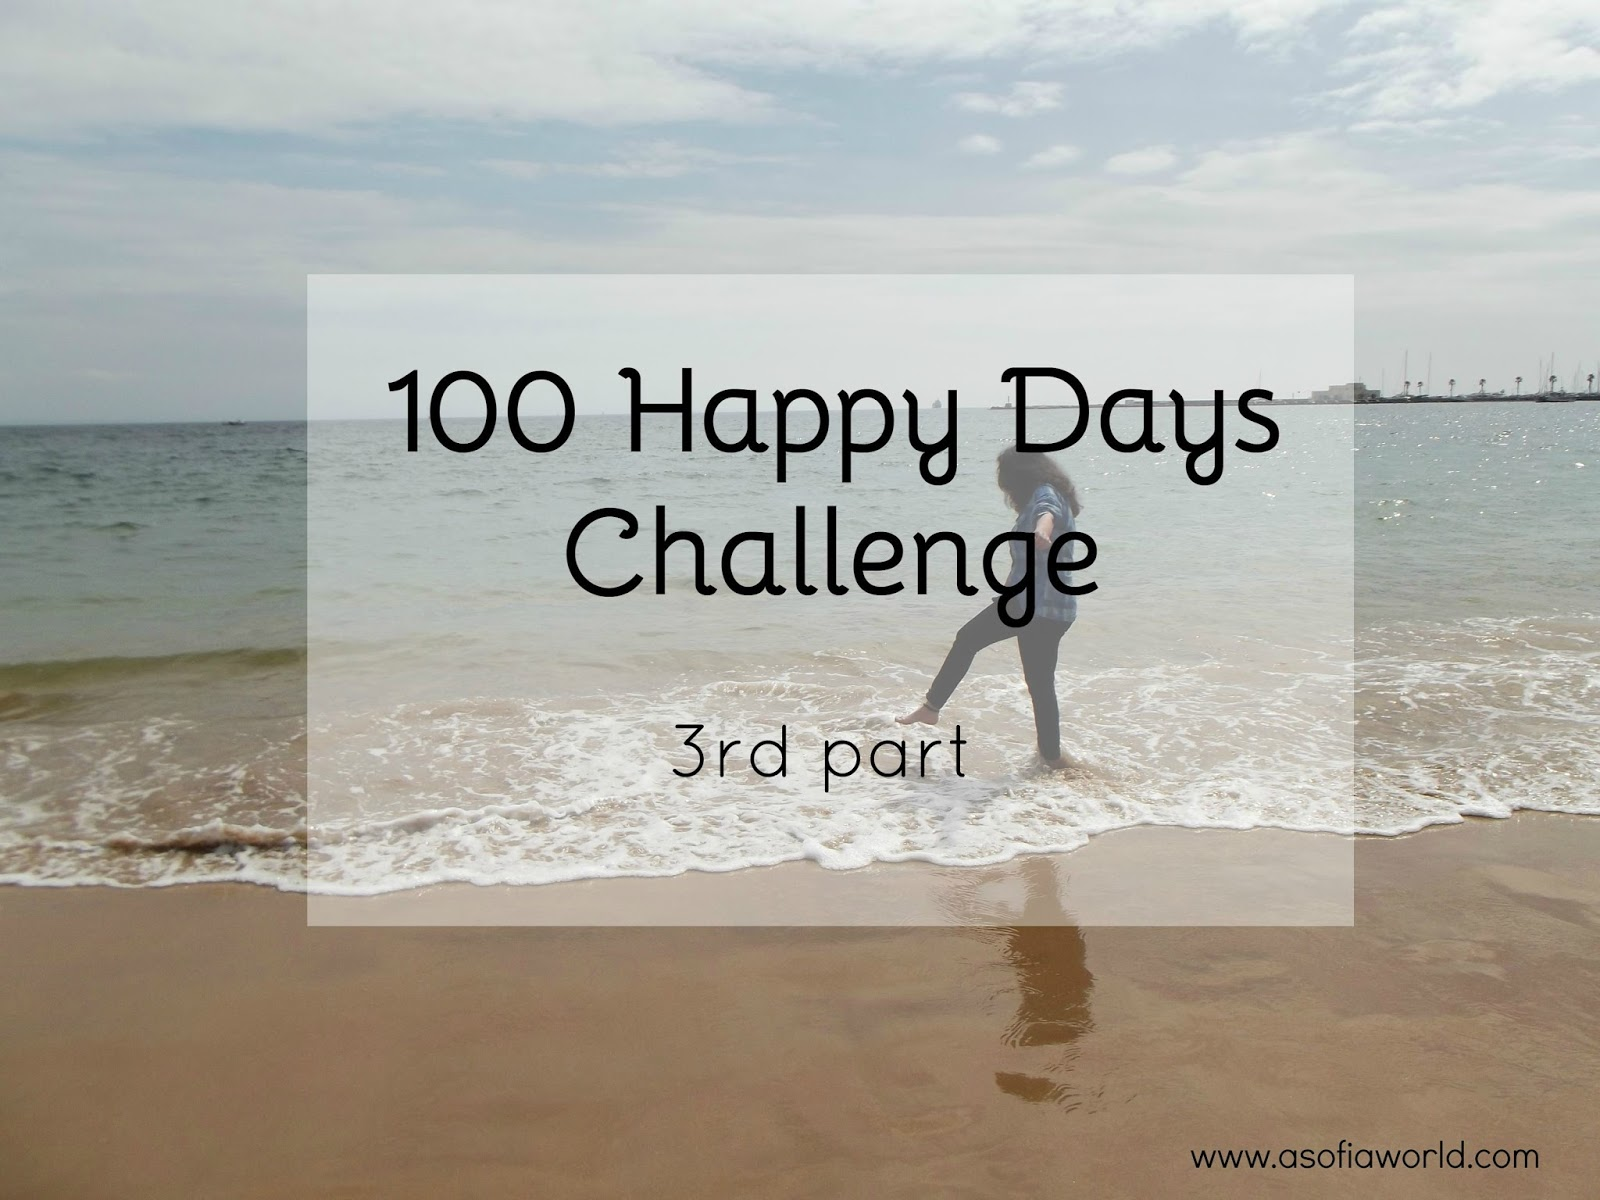 100 Happy Days 3rd part